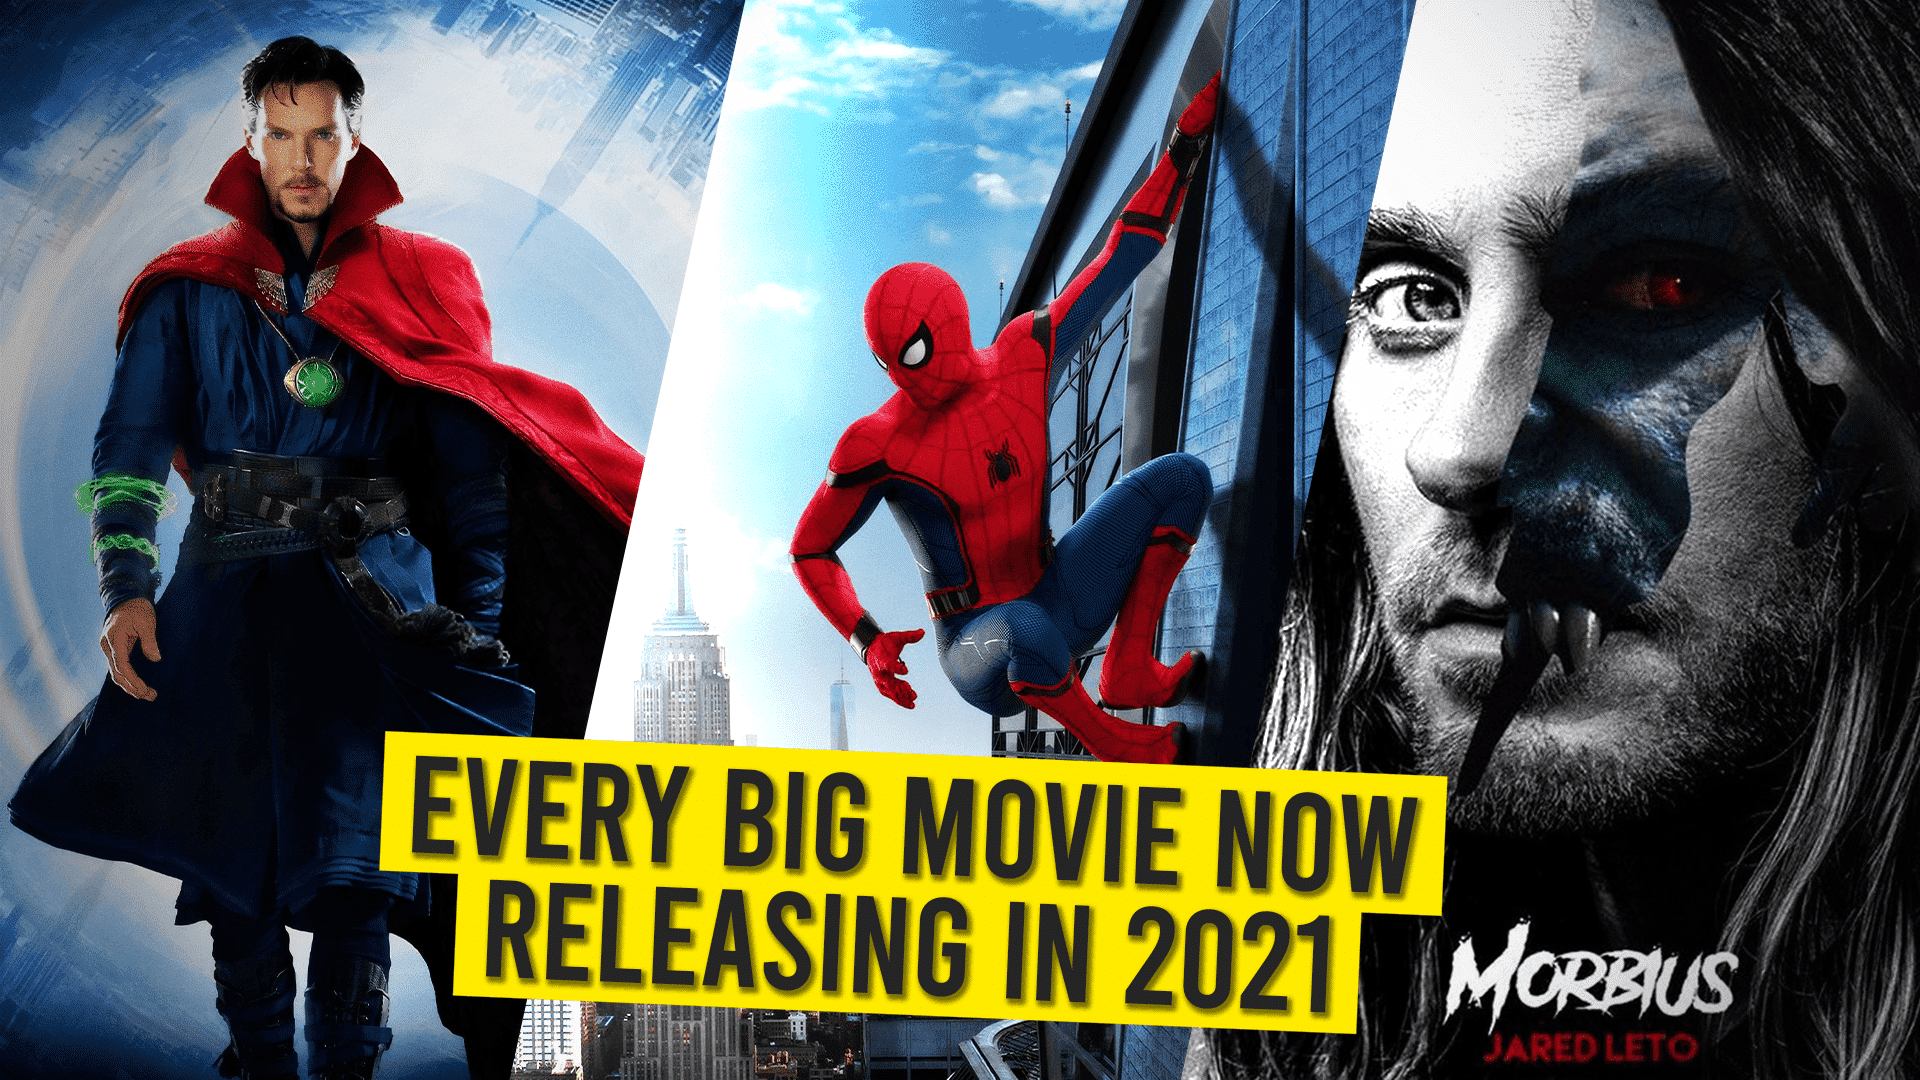 Big movies coming in 2021